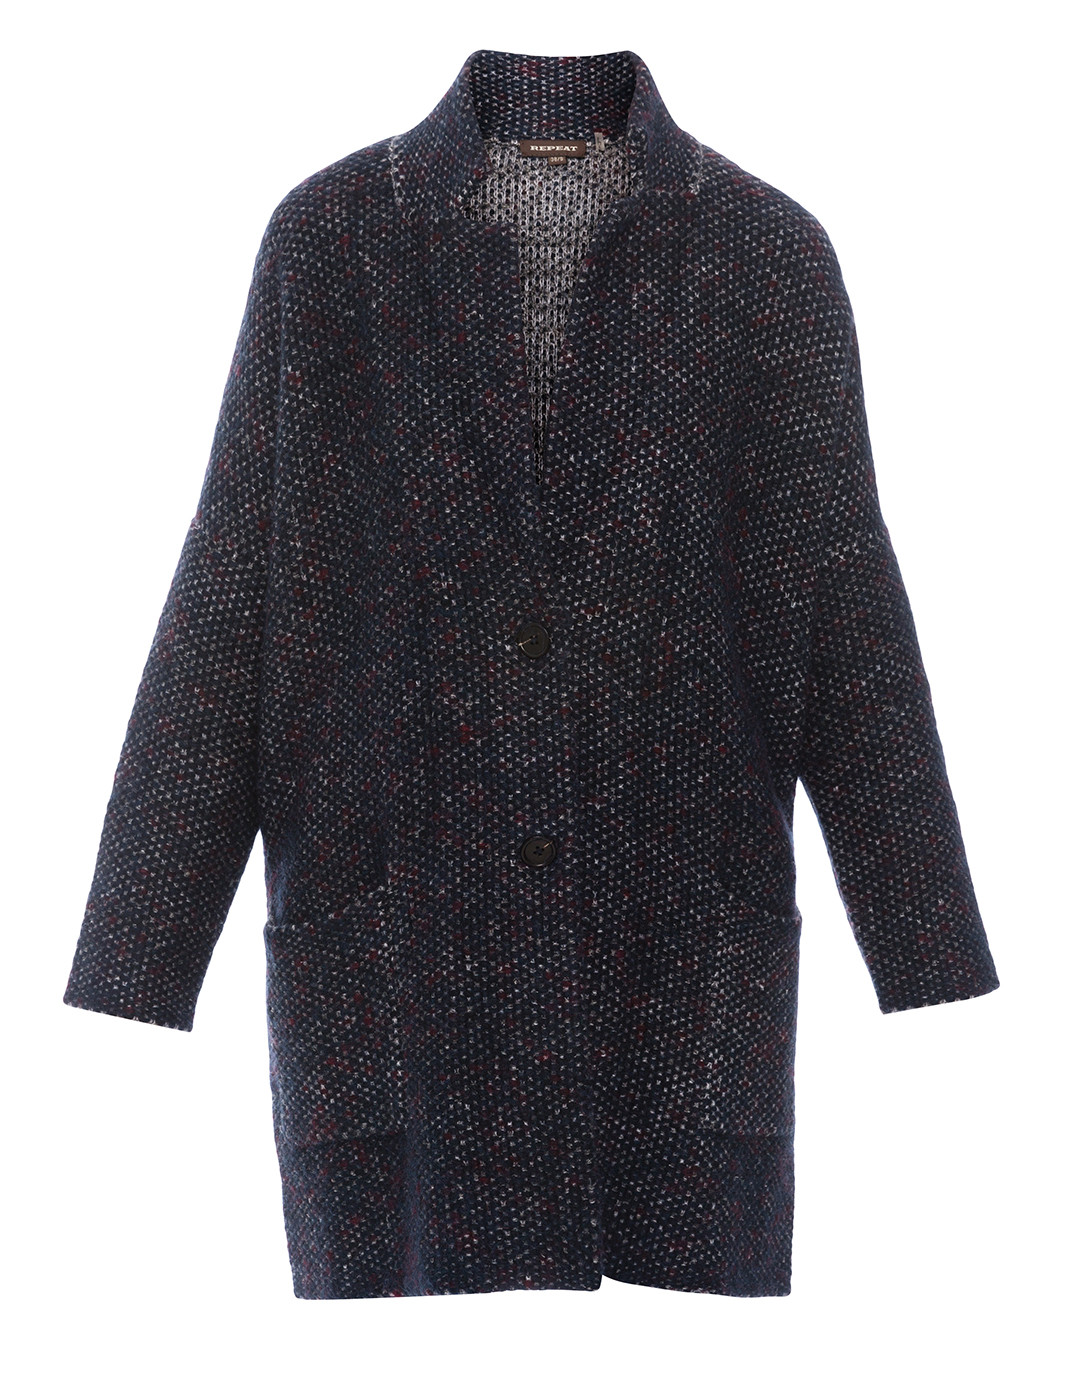 Blue and Burgundy Tweed Sweater Coat | Repeat Cashmere | Halsbrook